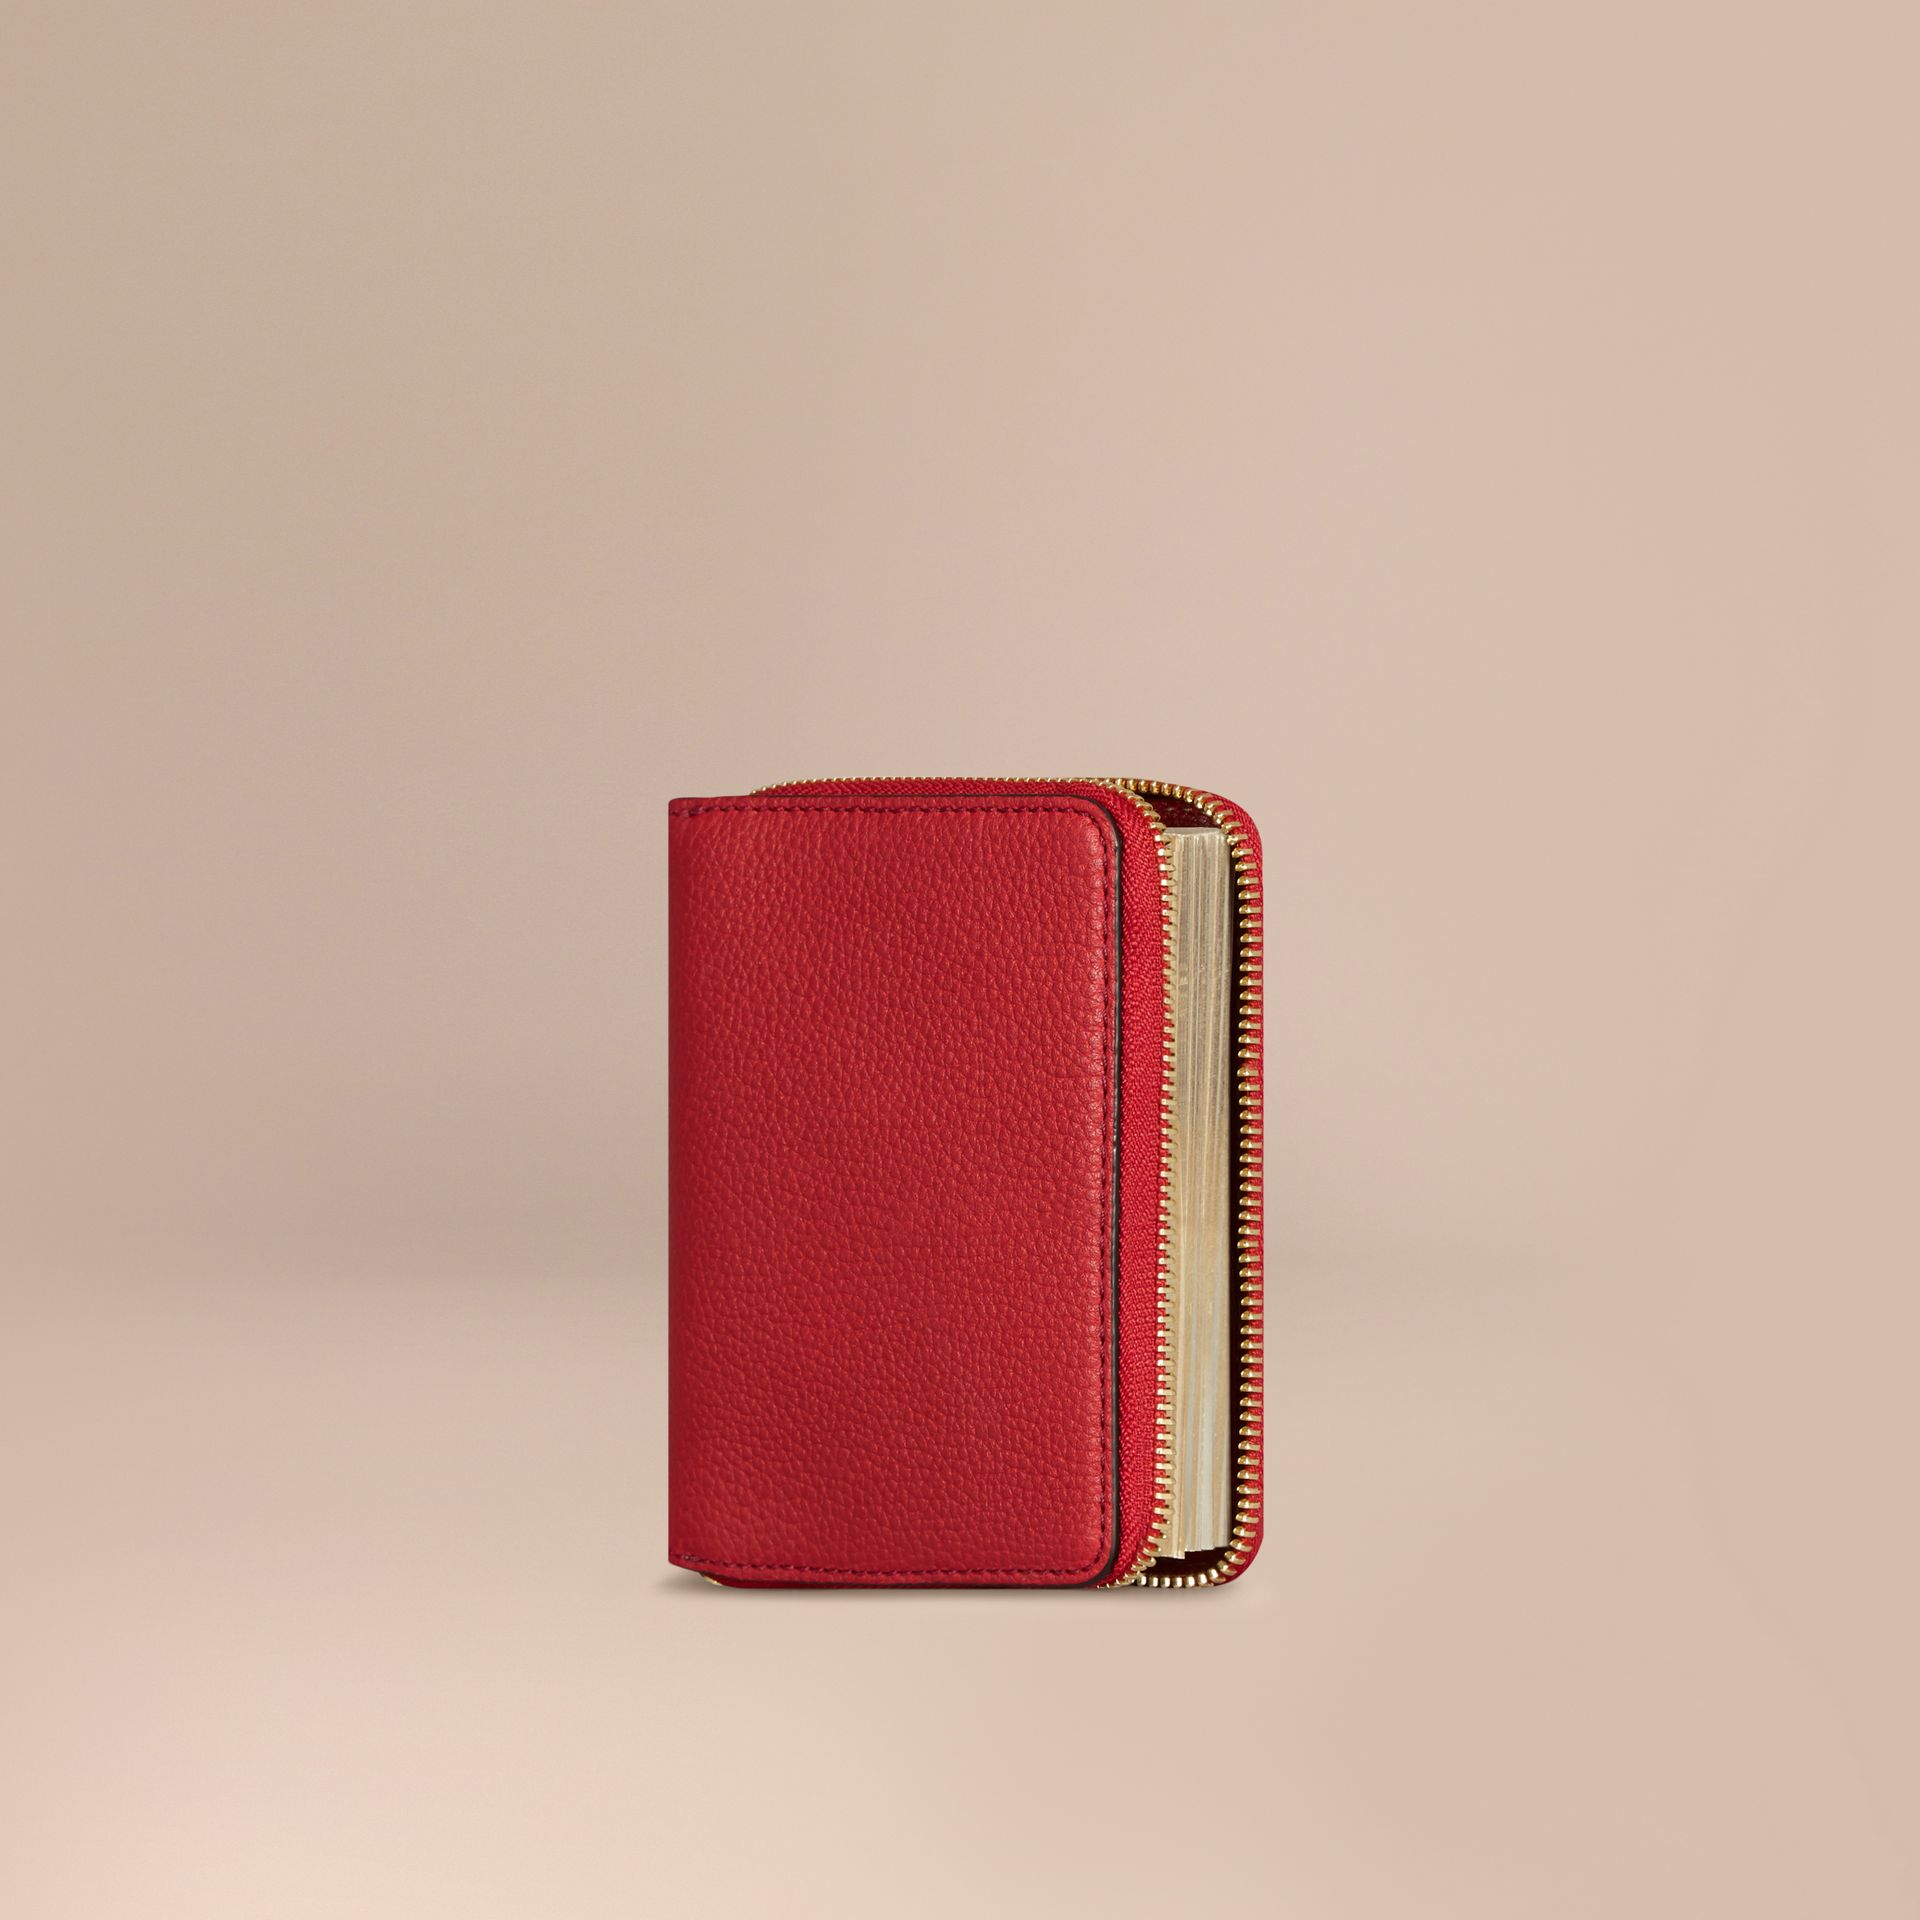 Ziparound Grainy Leather Mini Notebook in Parade Red | Burberry - gallery image 1